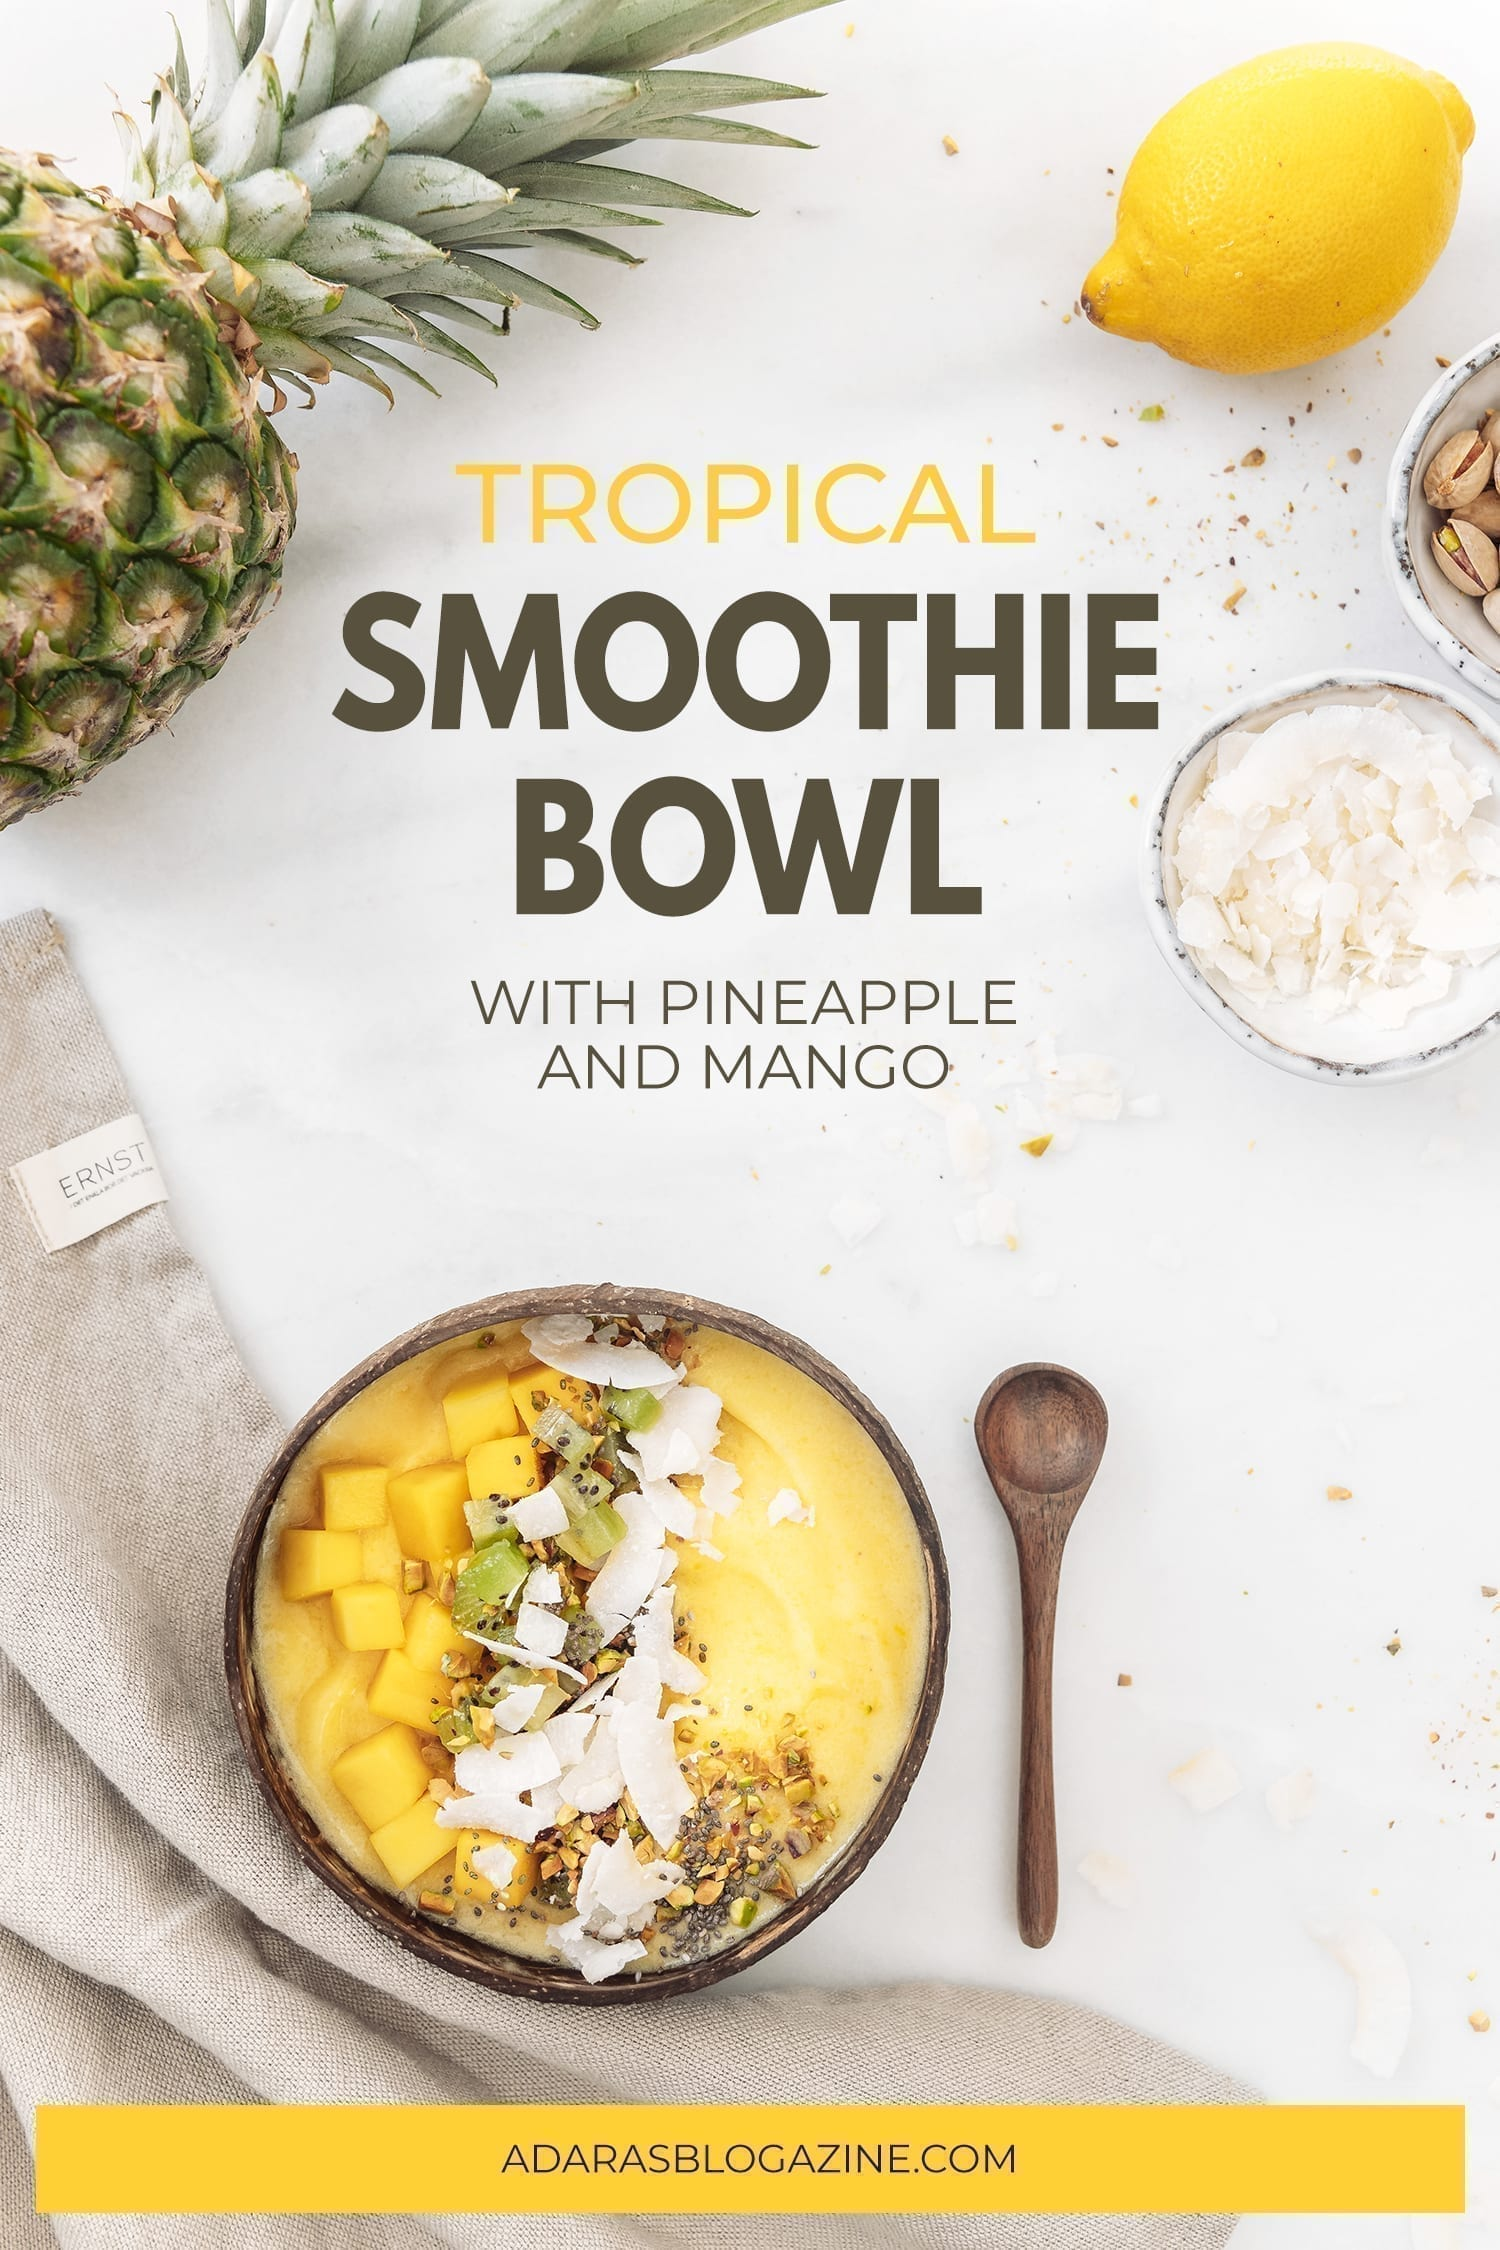 Recipe: Tropical Smoothie Bowl with Pineapple, Mango & Coconut